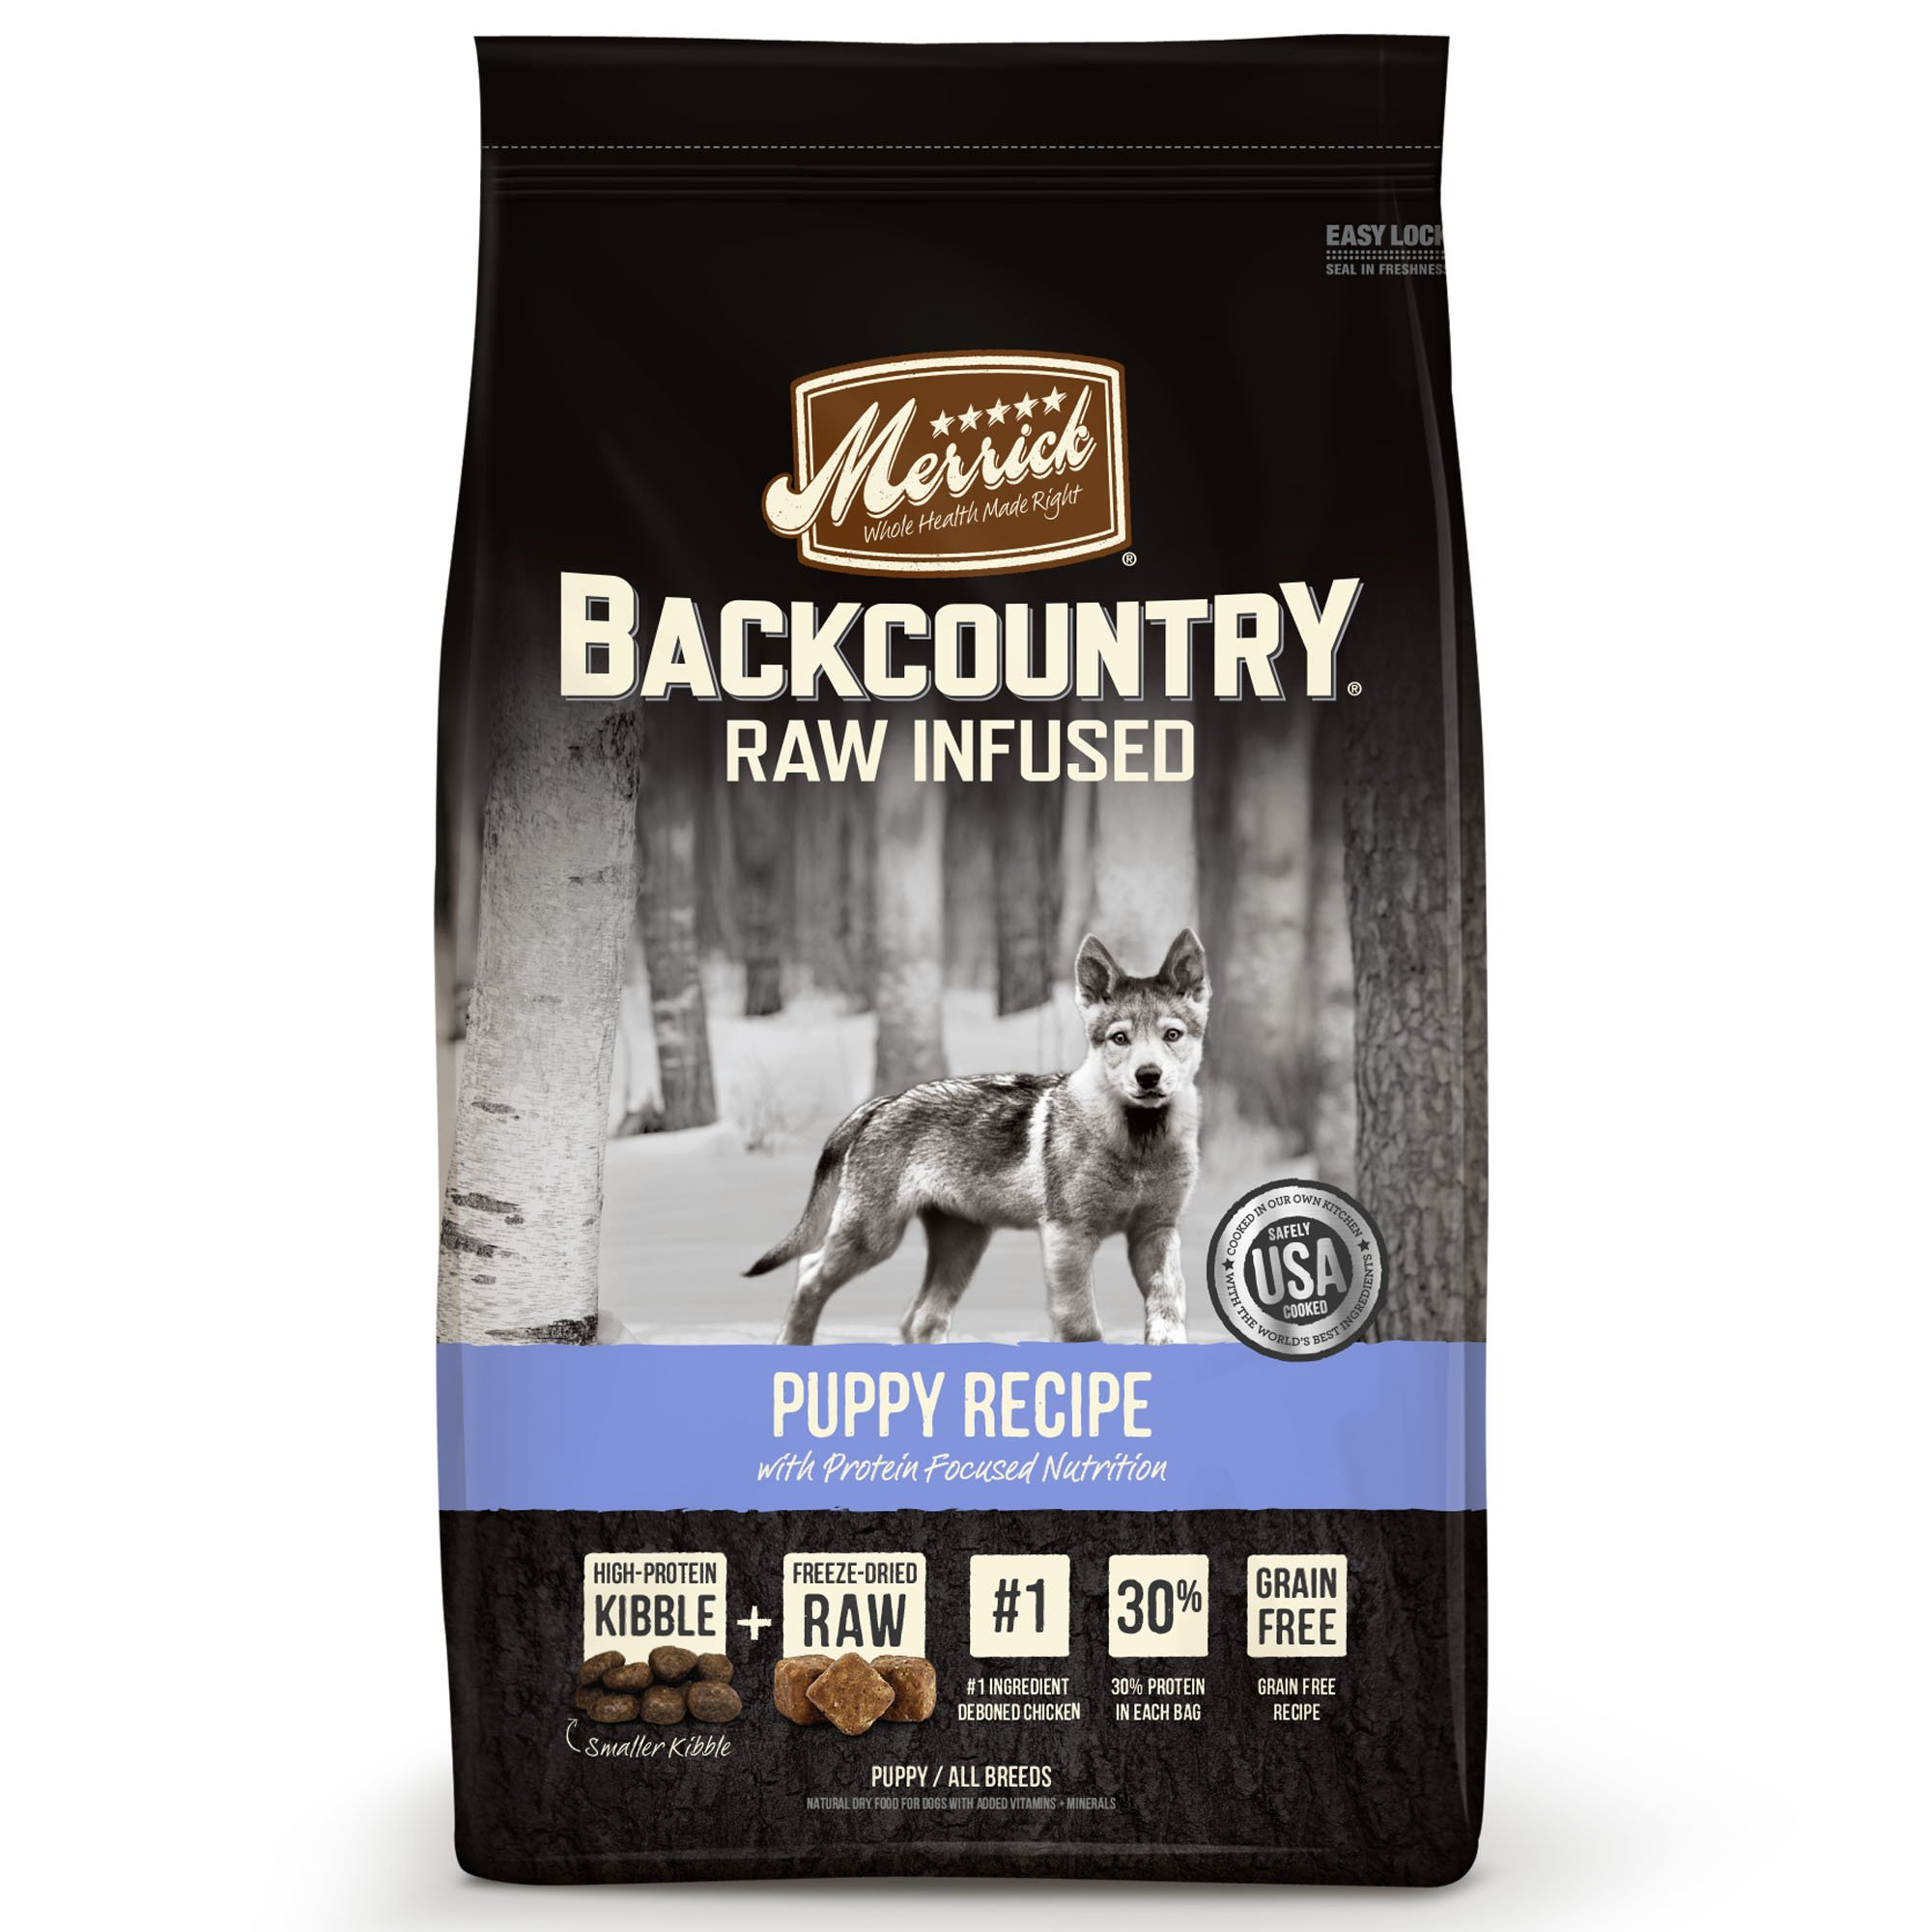 Merrick Backcountry Grain Free Raw Infused Puppy Dry Food Petco